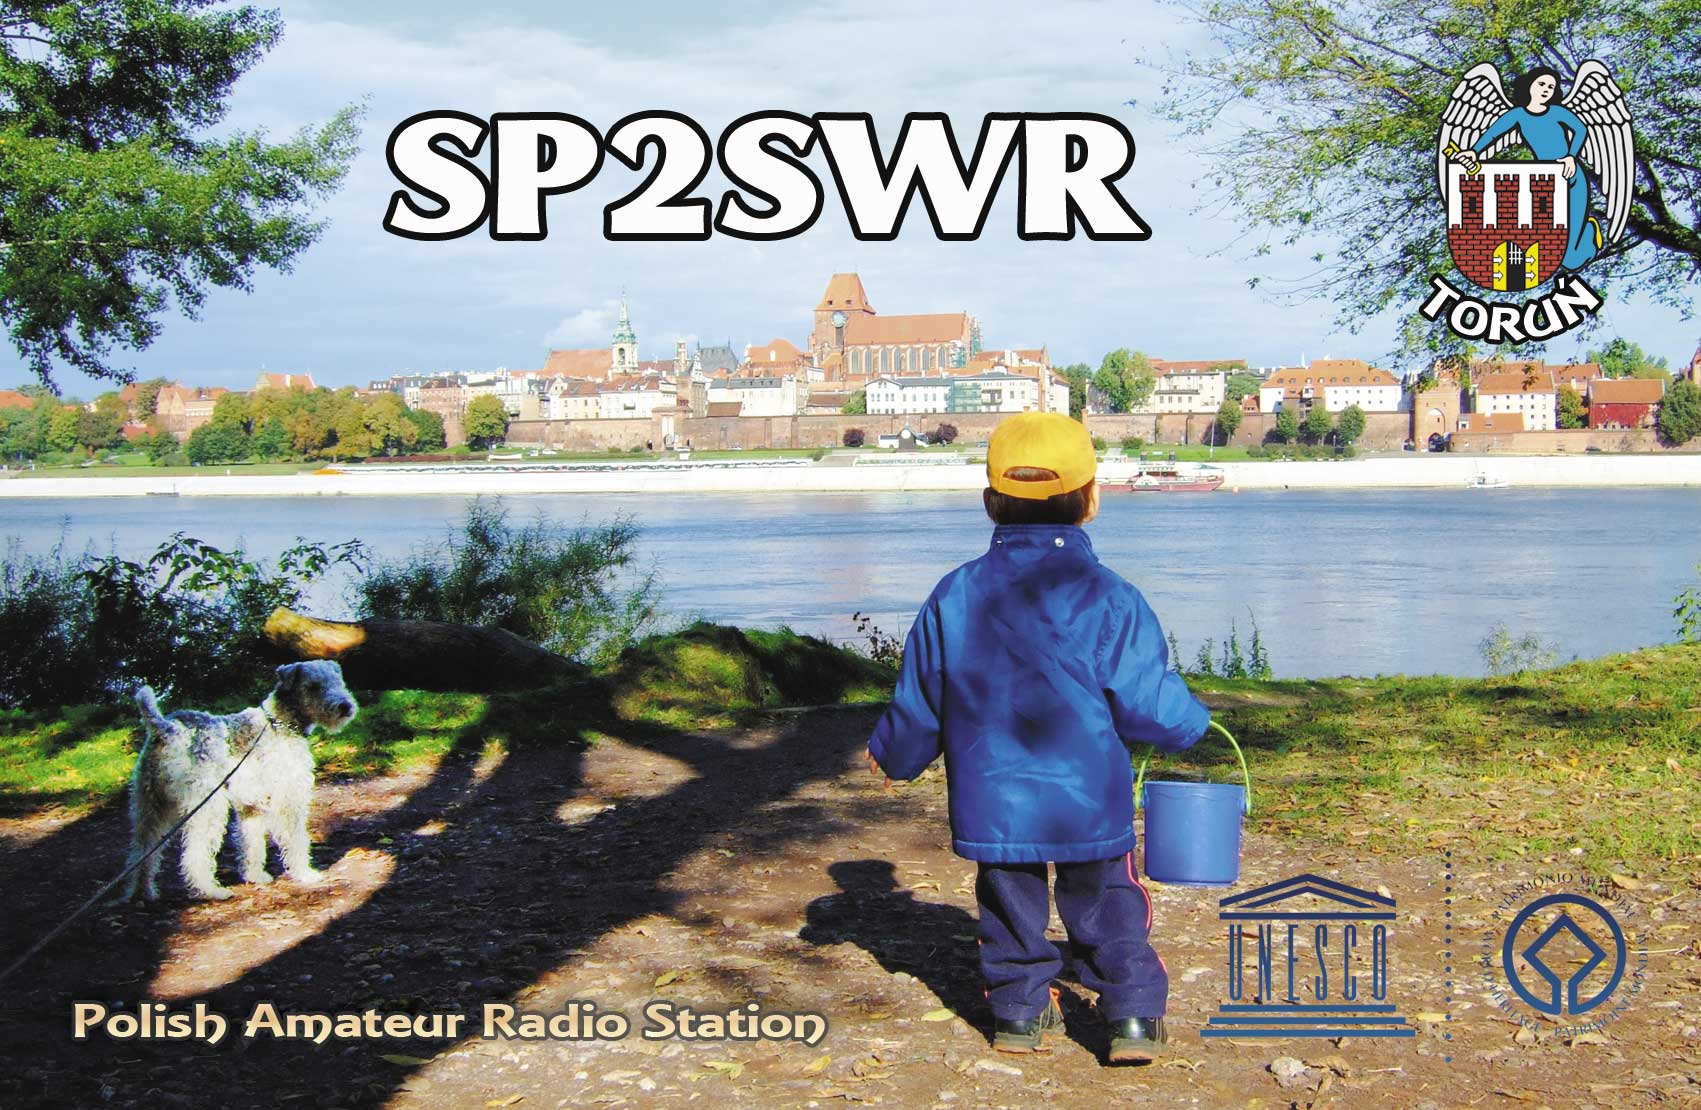 QSL image for SP2SWR